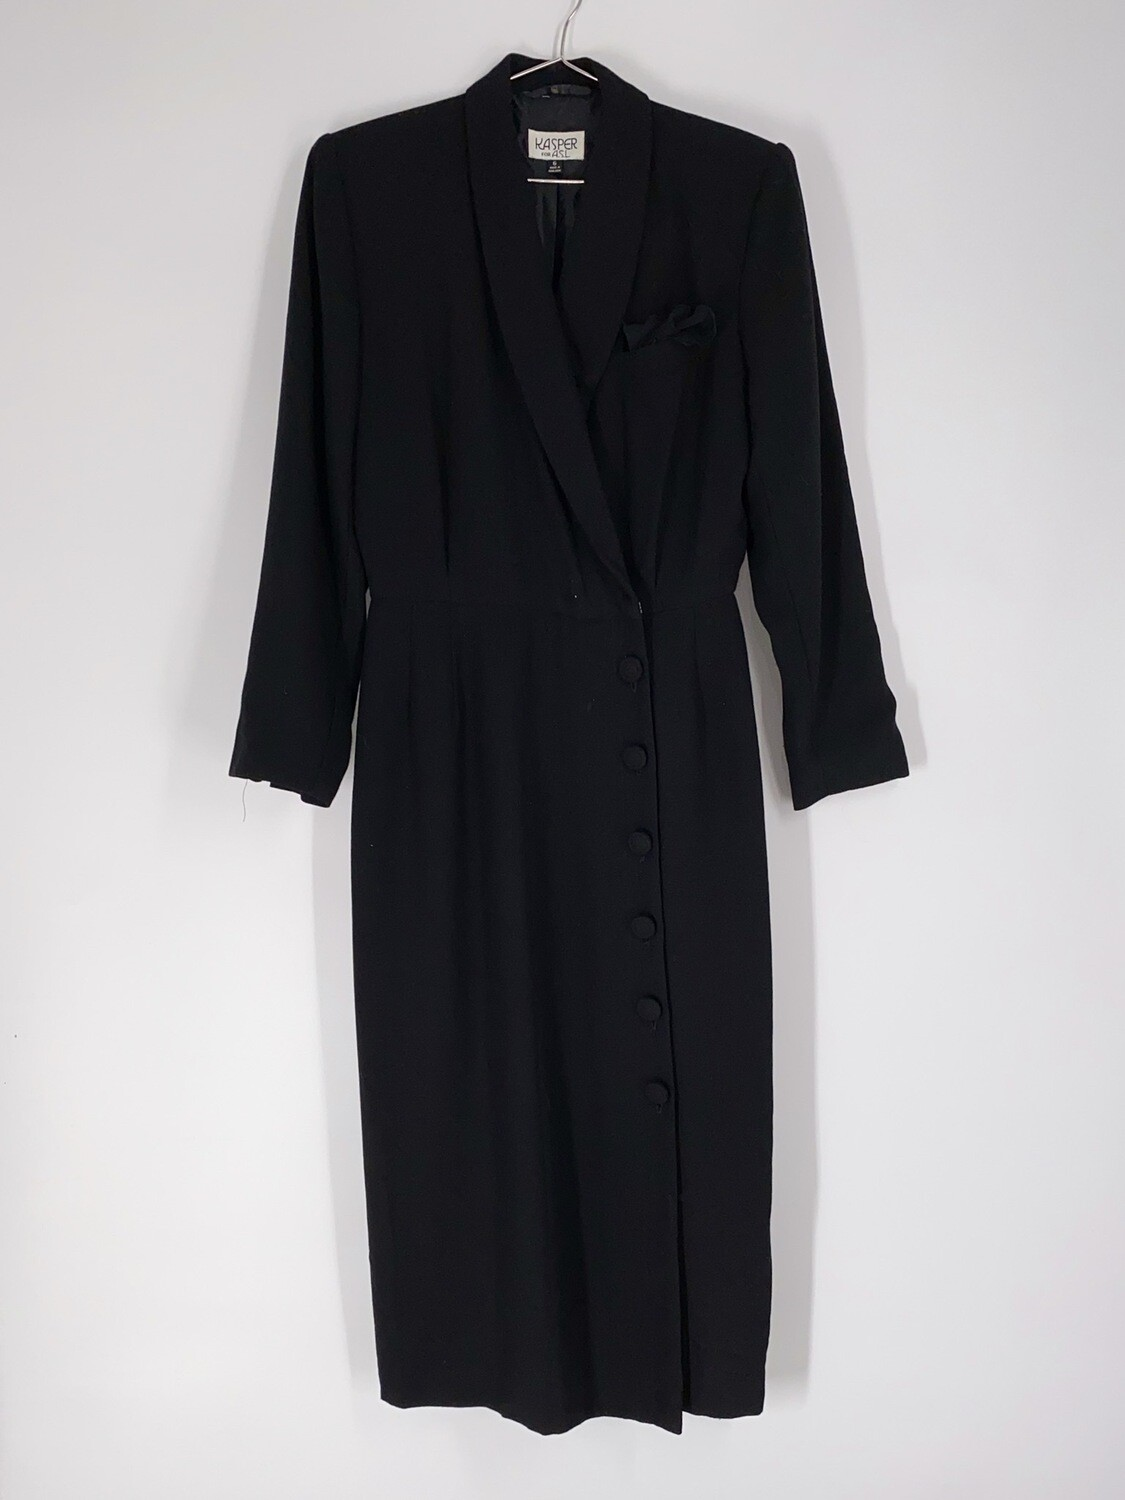 Kasper Blazer Dress Size M